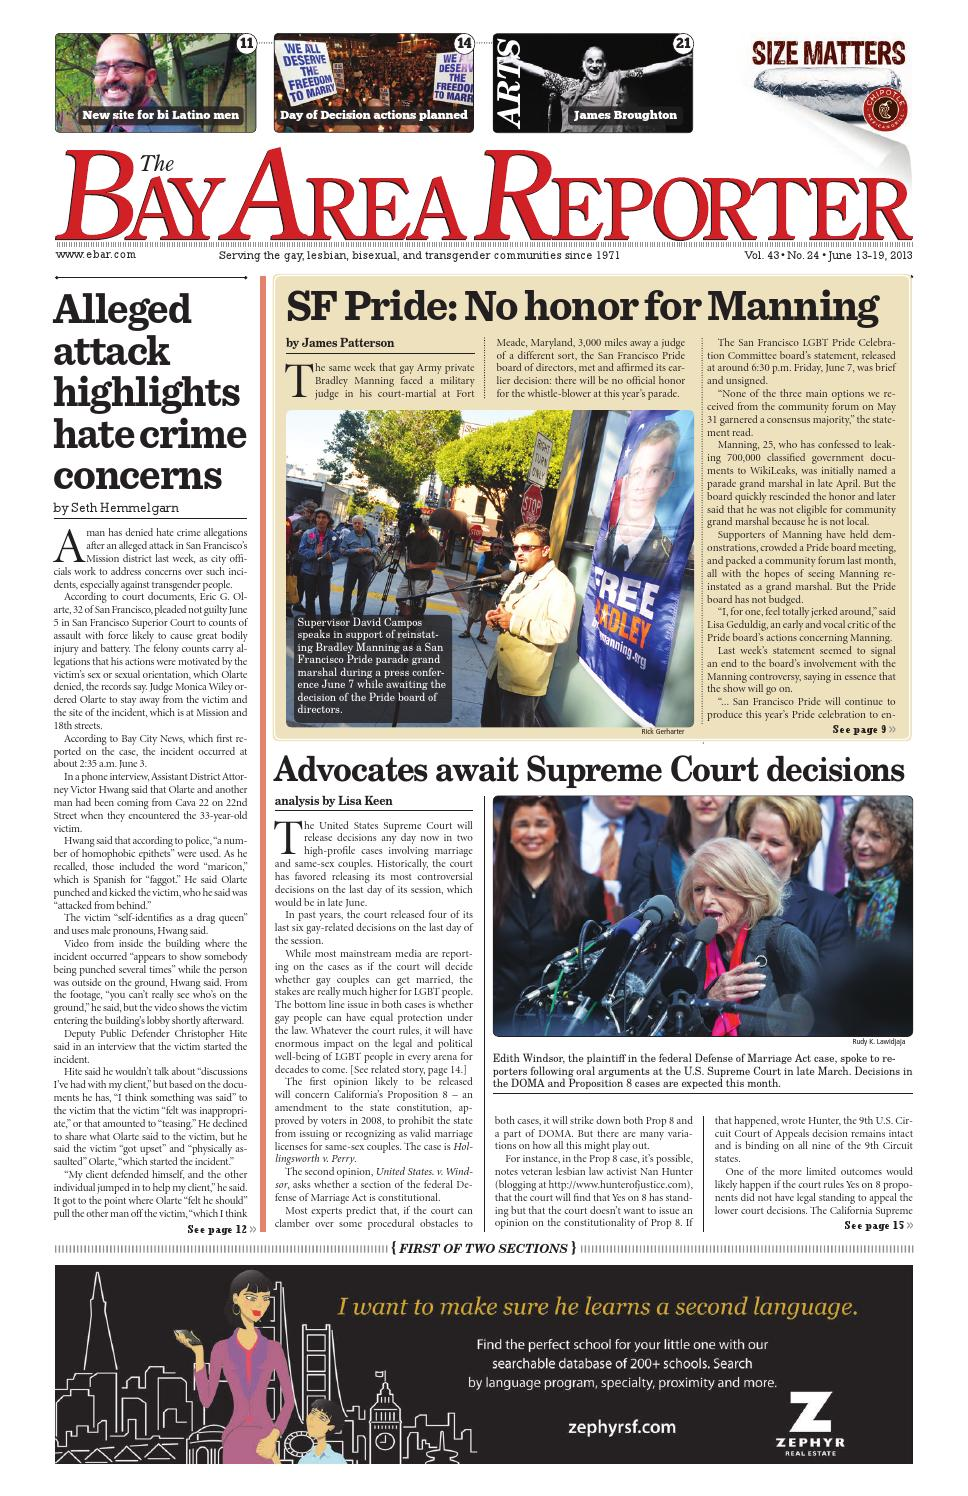 June 13, 2013 Edition of the Bay Area Reporter